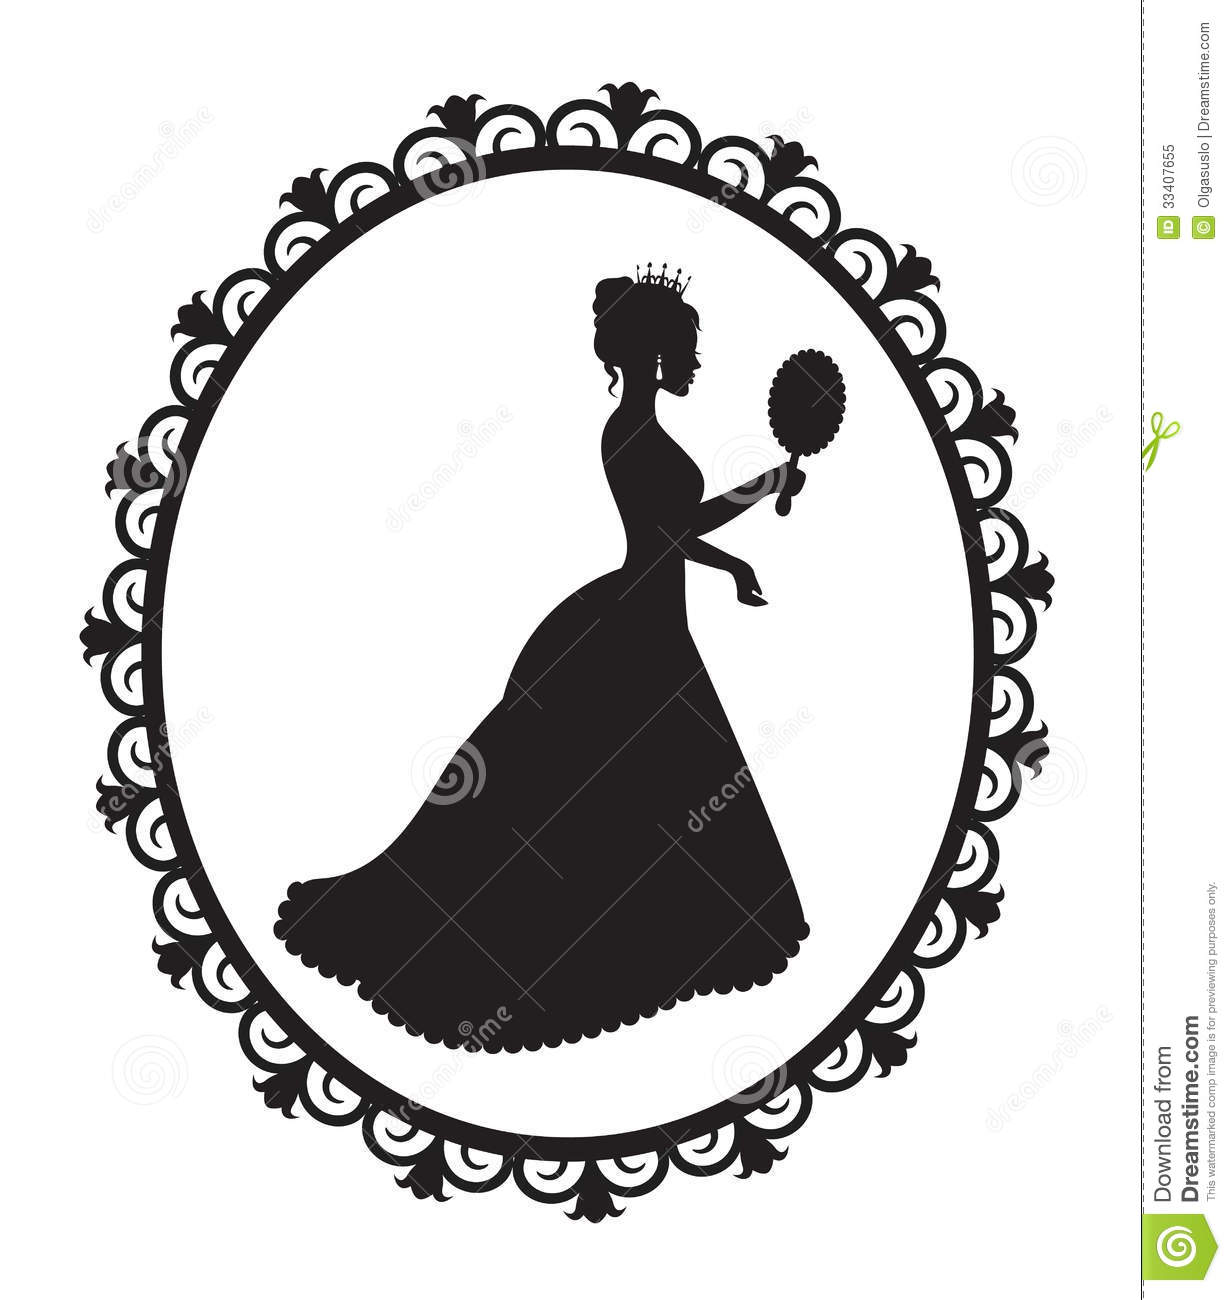 Princess Silhouette In The Frame Royalty Free Stock Photo   Image